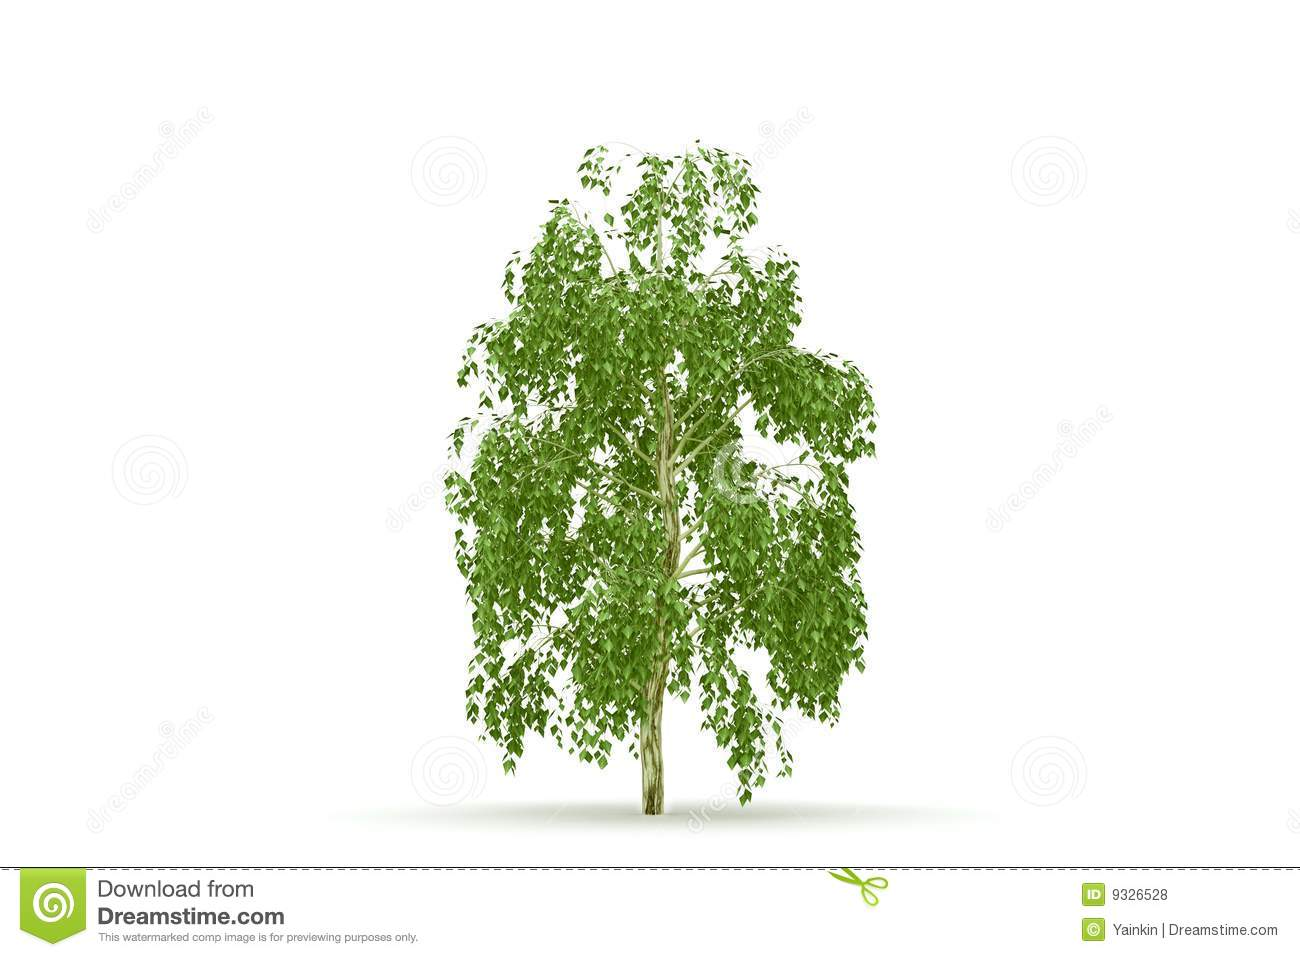 birch tree black singles 1 [corrosion of metals by wood/bm] corrosion of metals by wood 1 introduction wood is a corrosive substance by nature, and can be made more corrosive by treatment given to it.